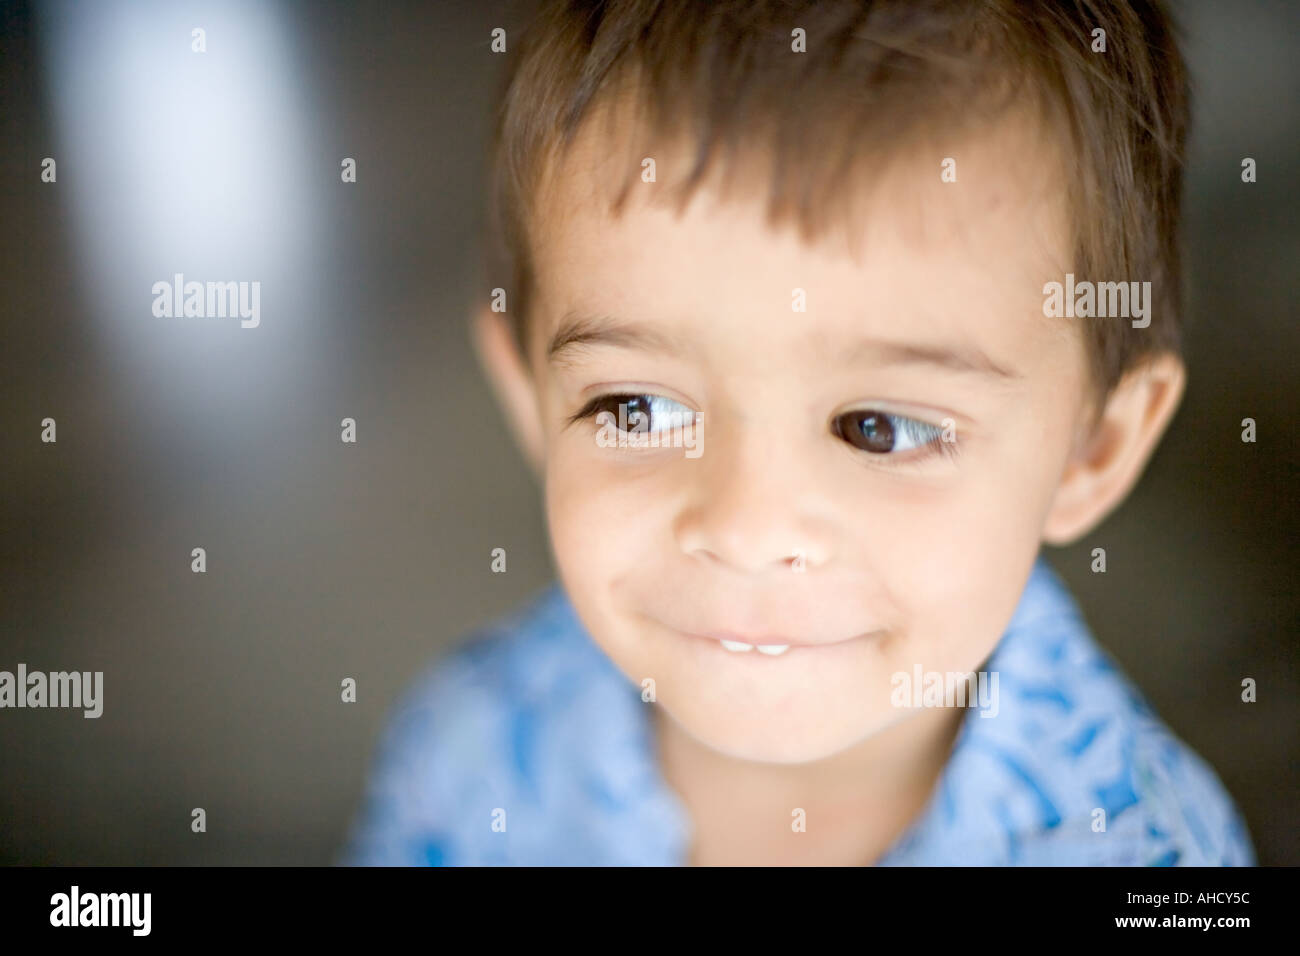 Camera looks down on a cute little boy with brown hair and a cheeky smile - Stock Image